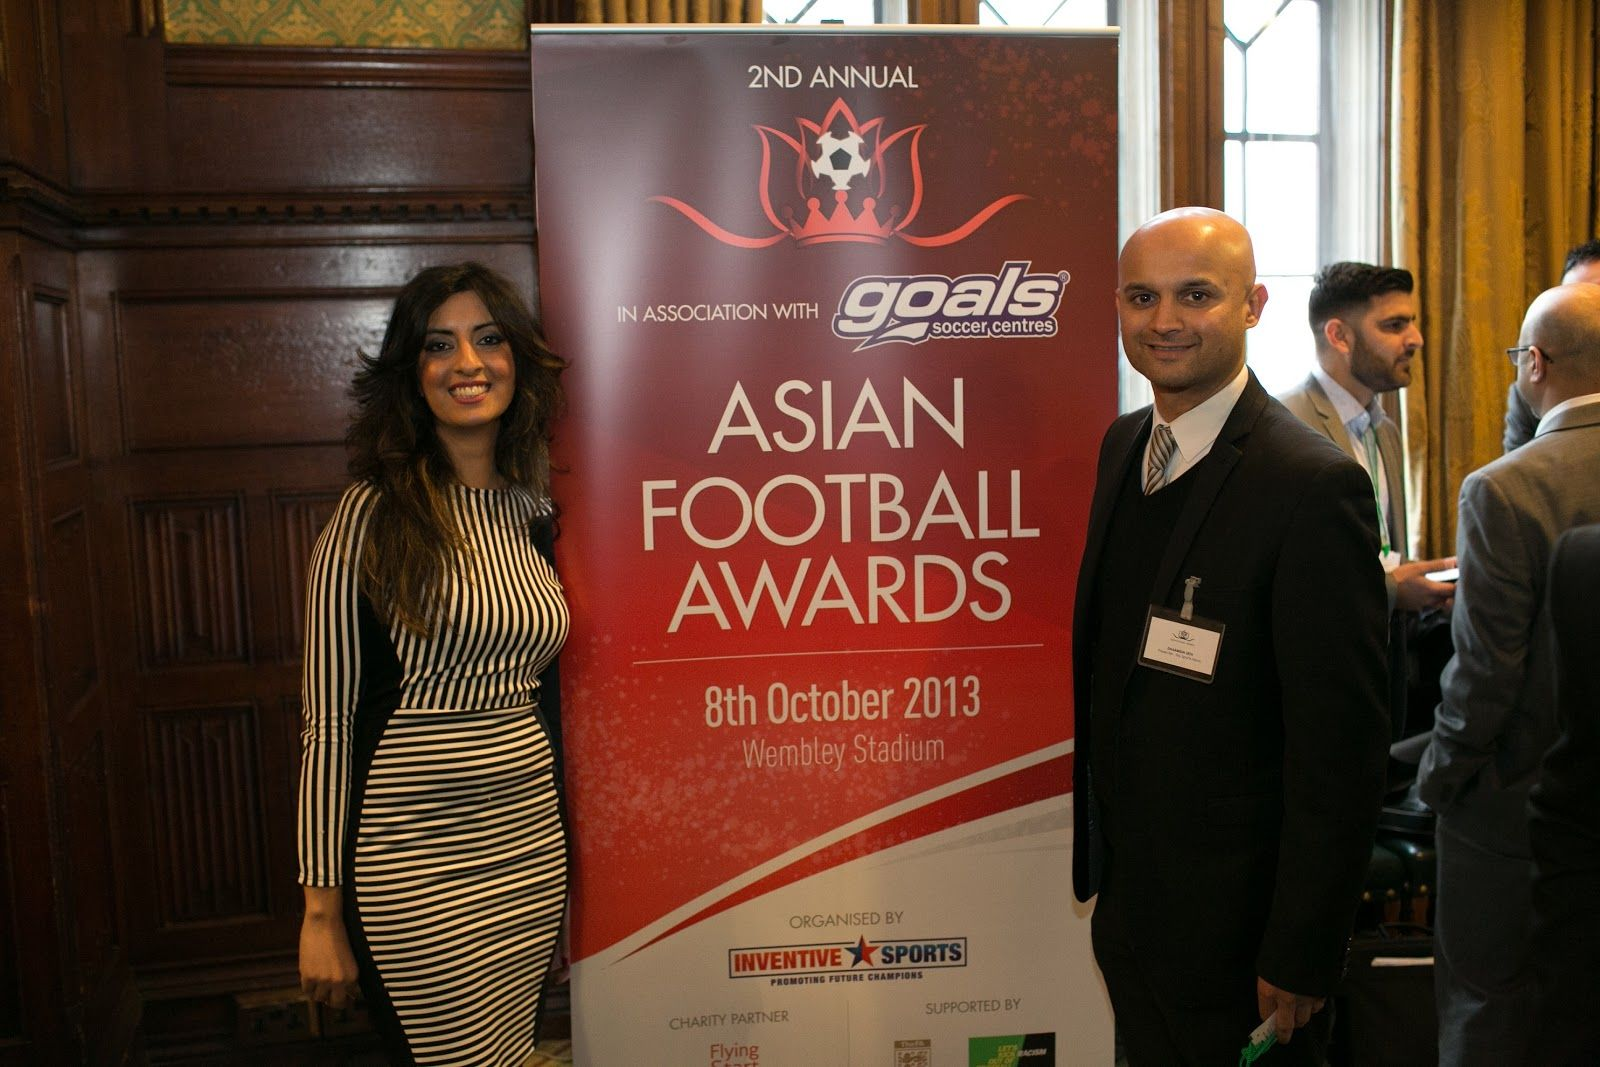 The hosts for the awards evening will be BBC Asian Network